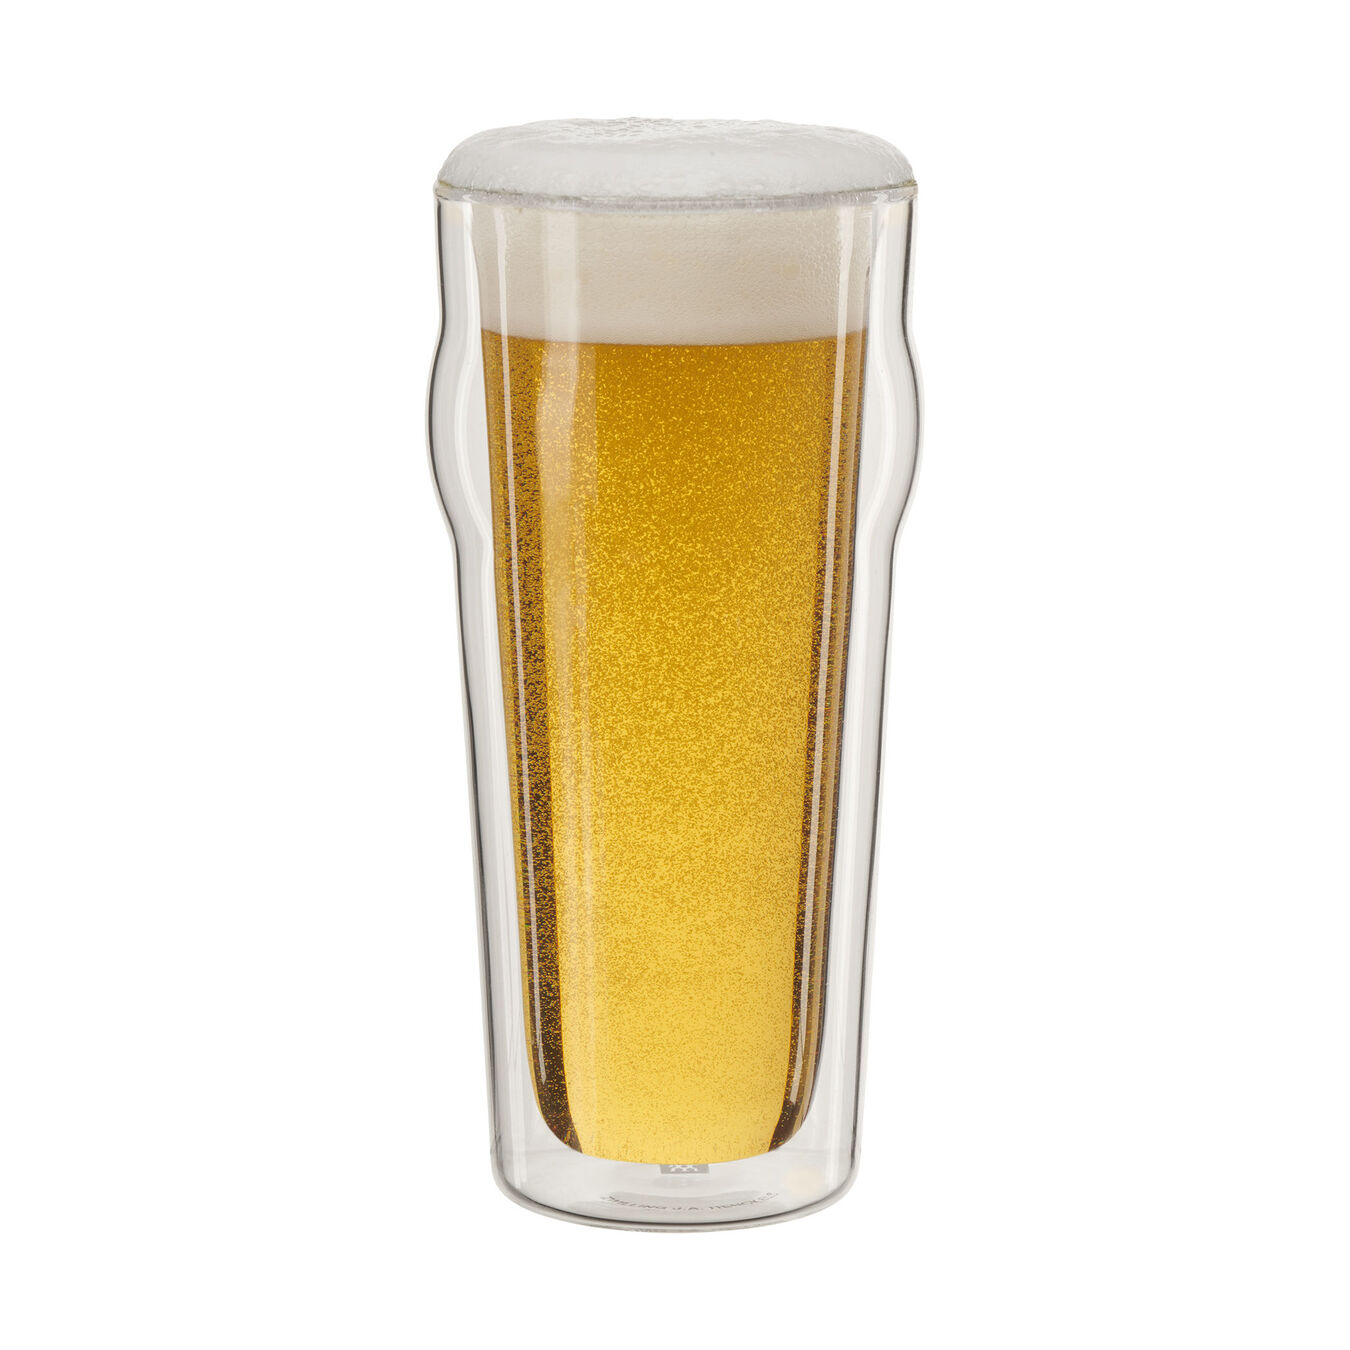 2 Piece Beer glass set,,large 1